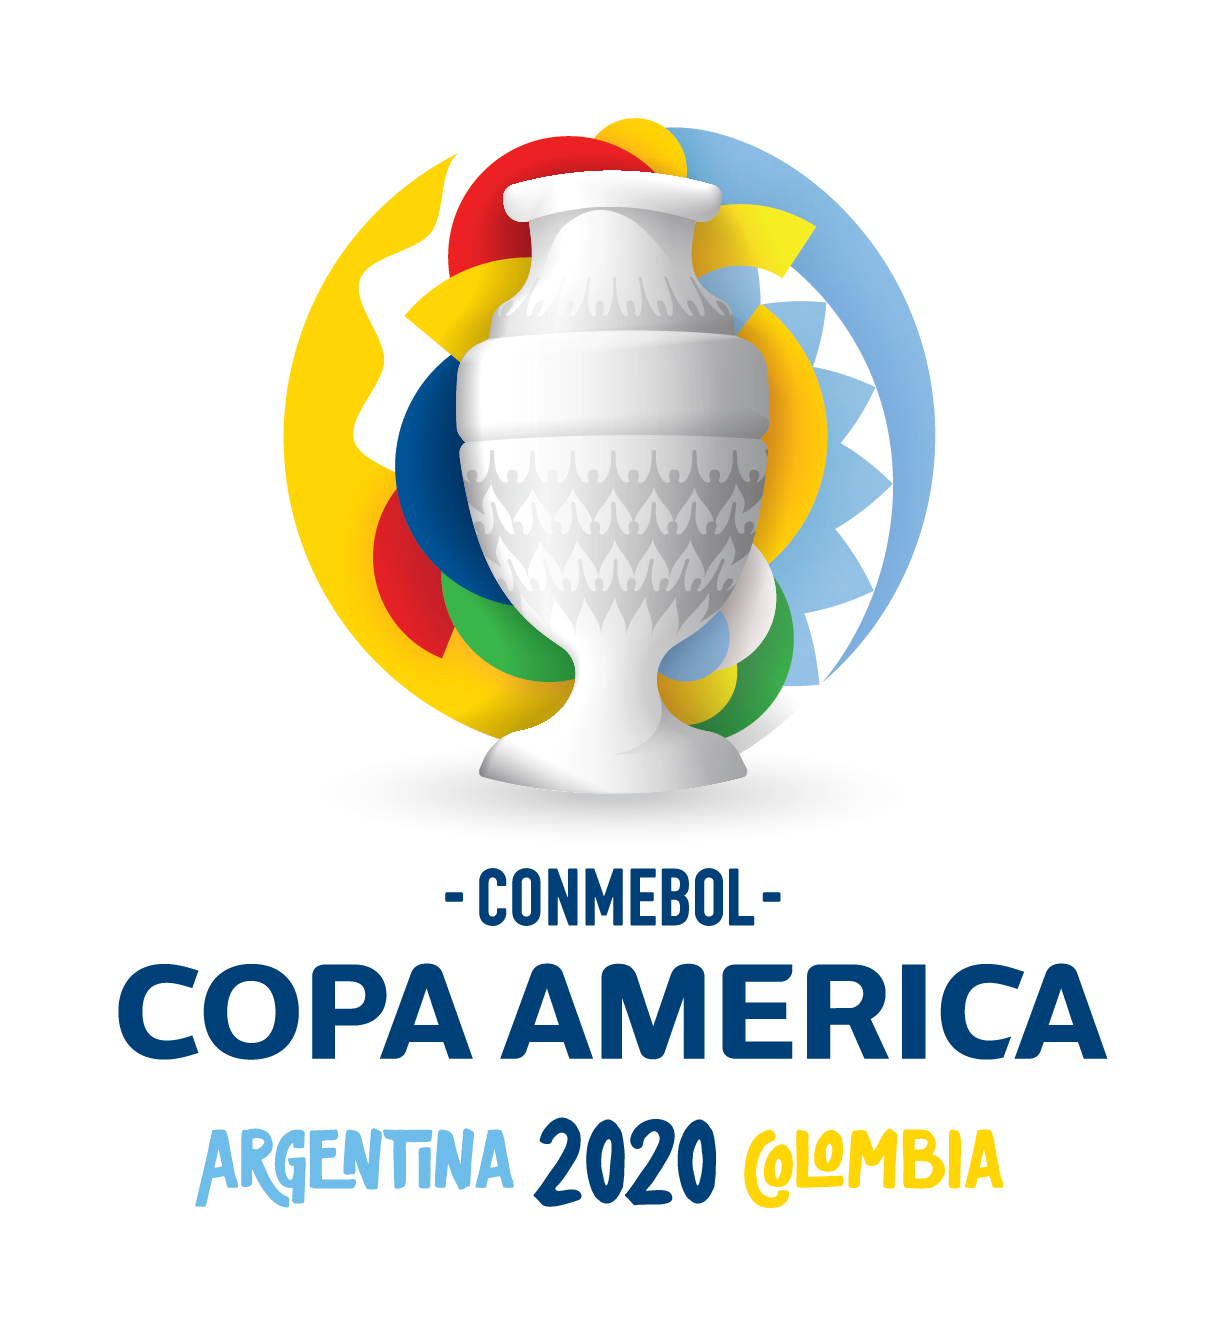 Dentsu Acquires Exclusive Global Commercial Sales Rights Of Copa America 2020 2024 And 2028 Press Releases News Dentsu Inc